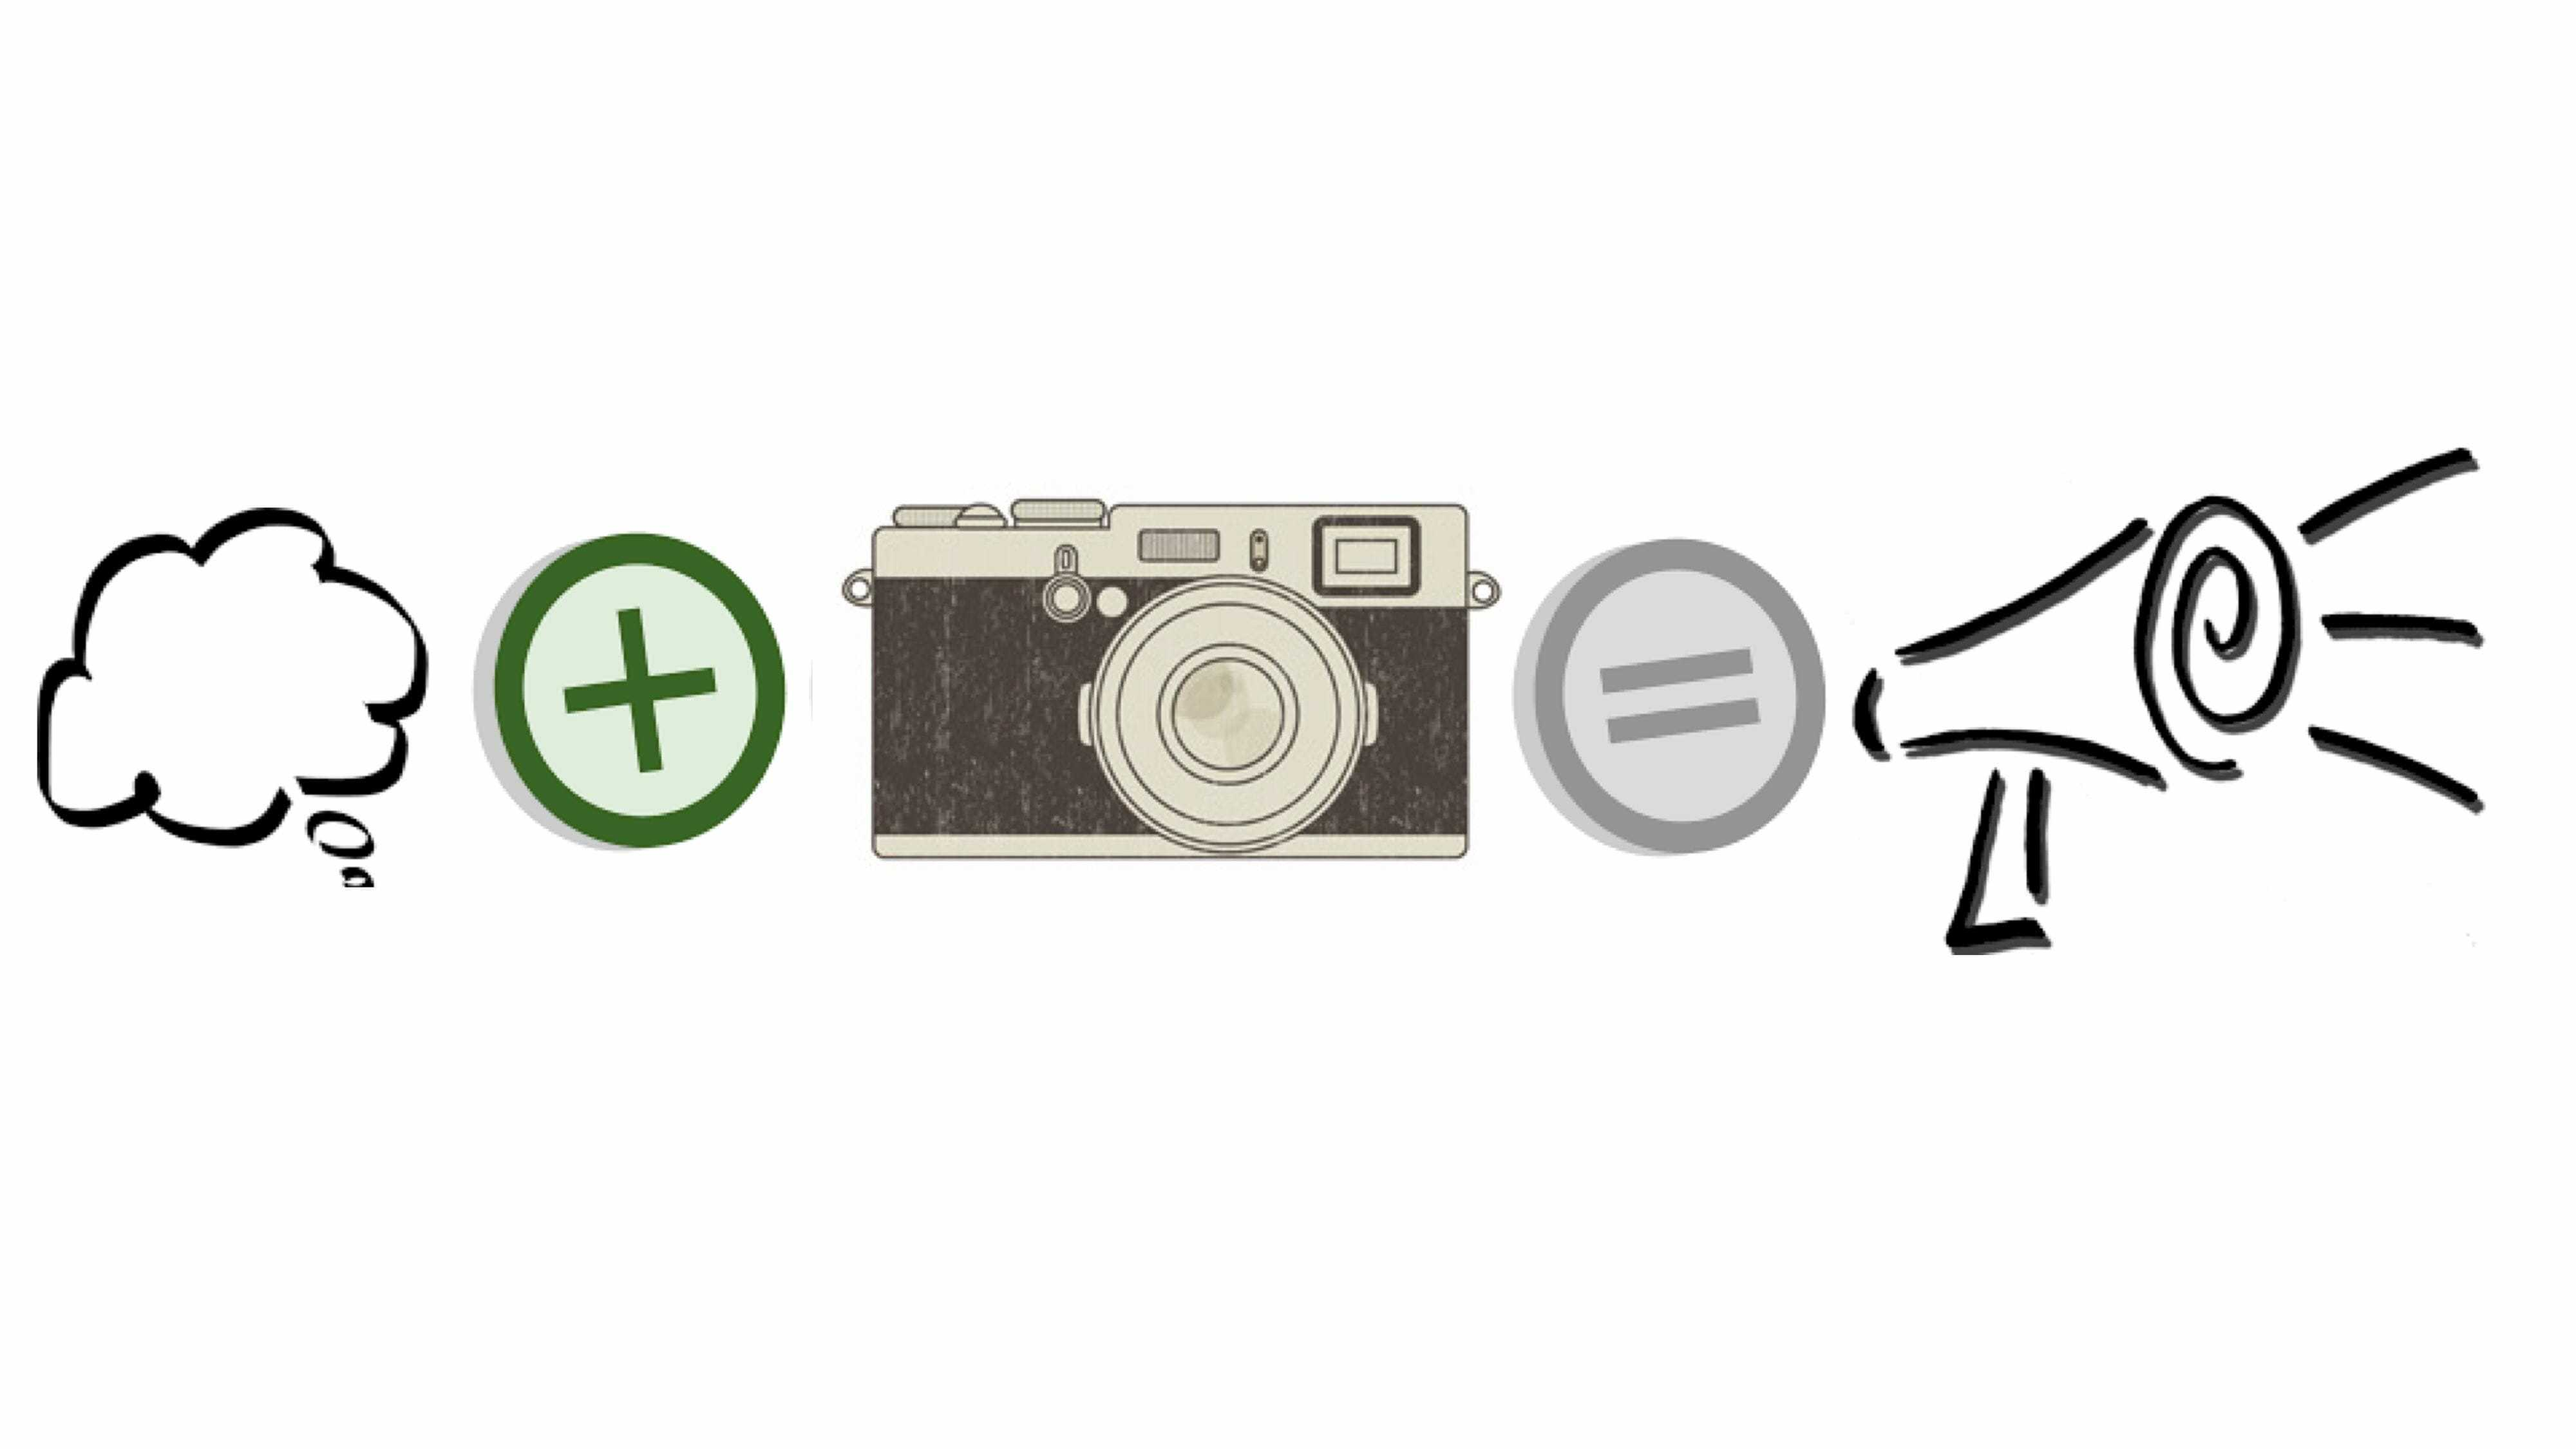 image: set up like a math equation. Left to right: thought bubble, addition sign, old camera, equal sign, drawn image of megaphone